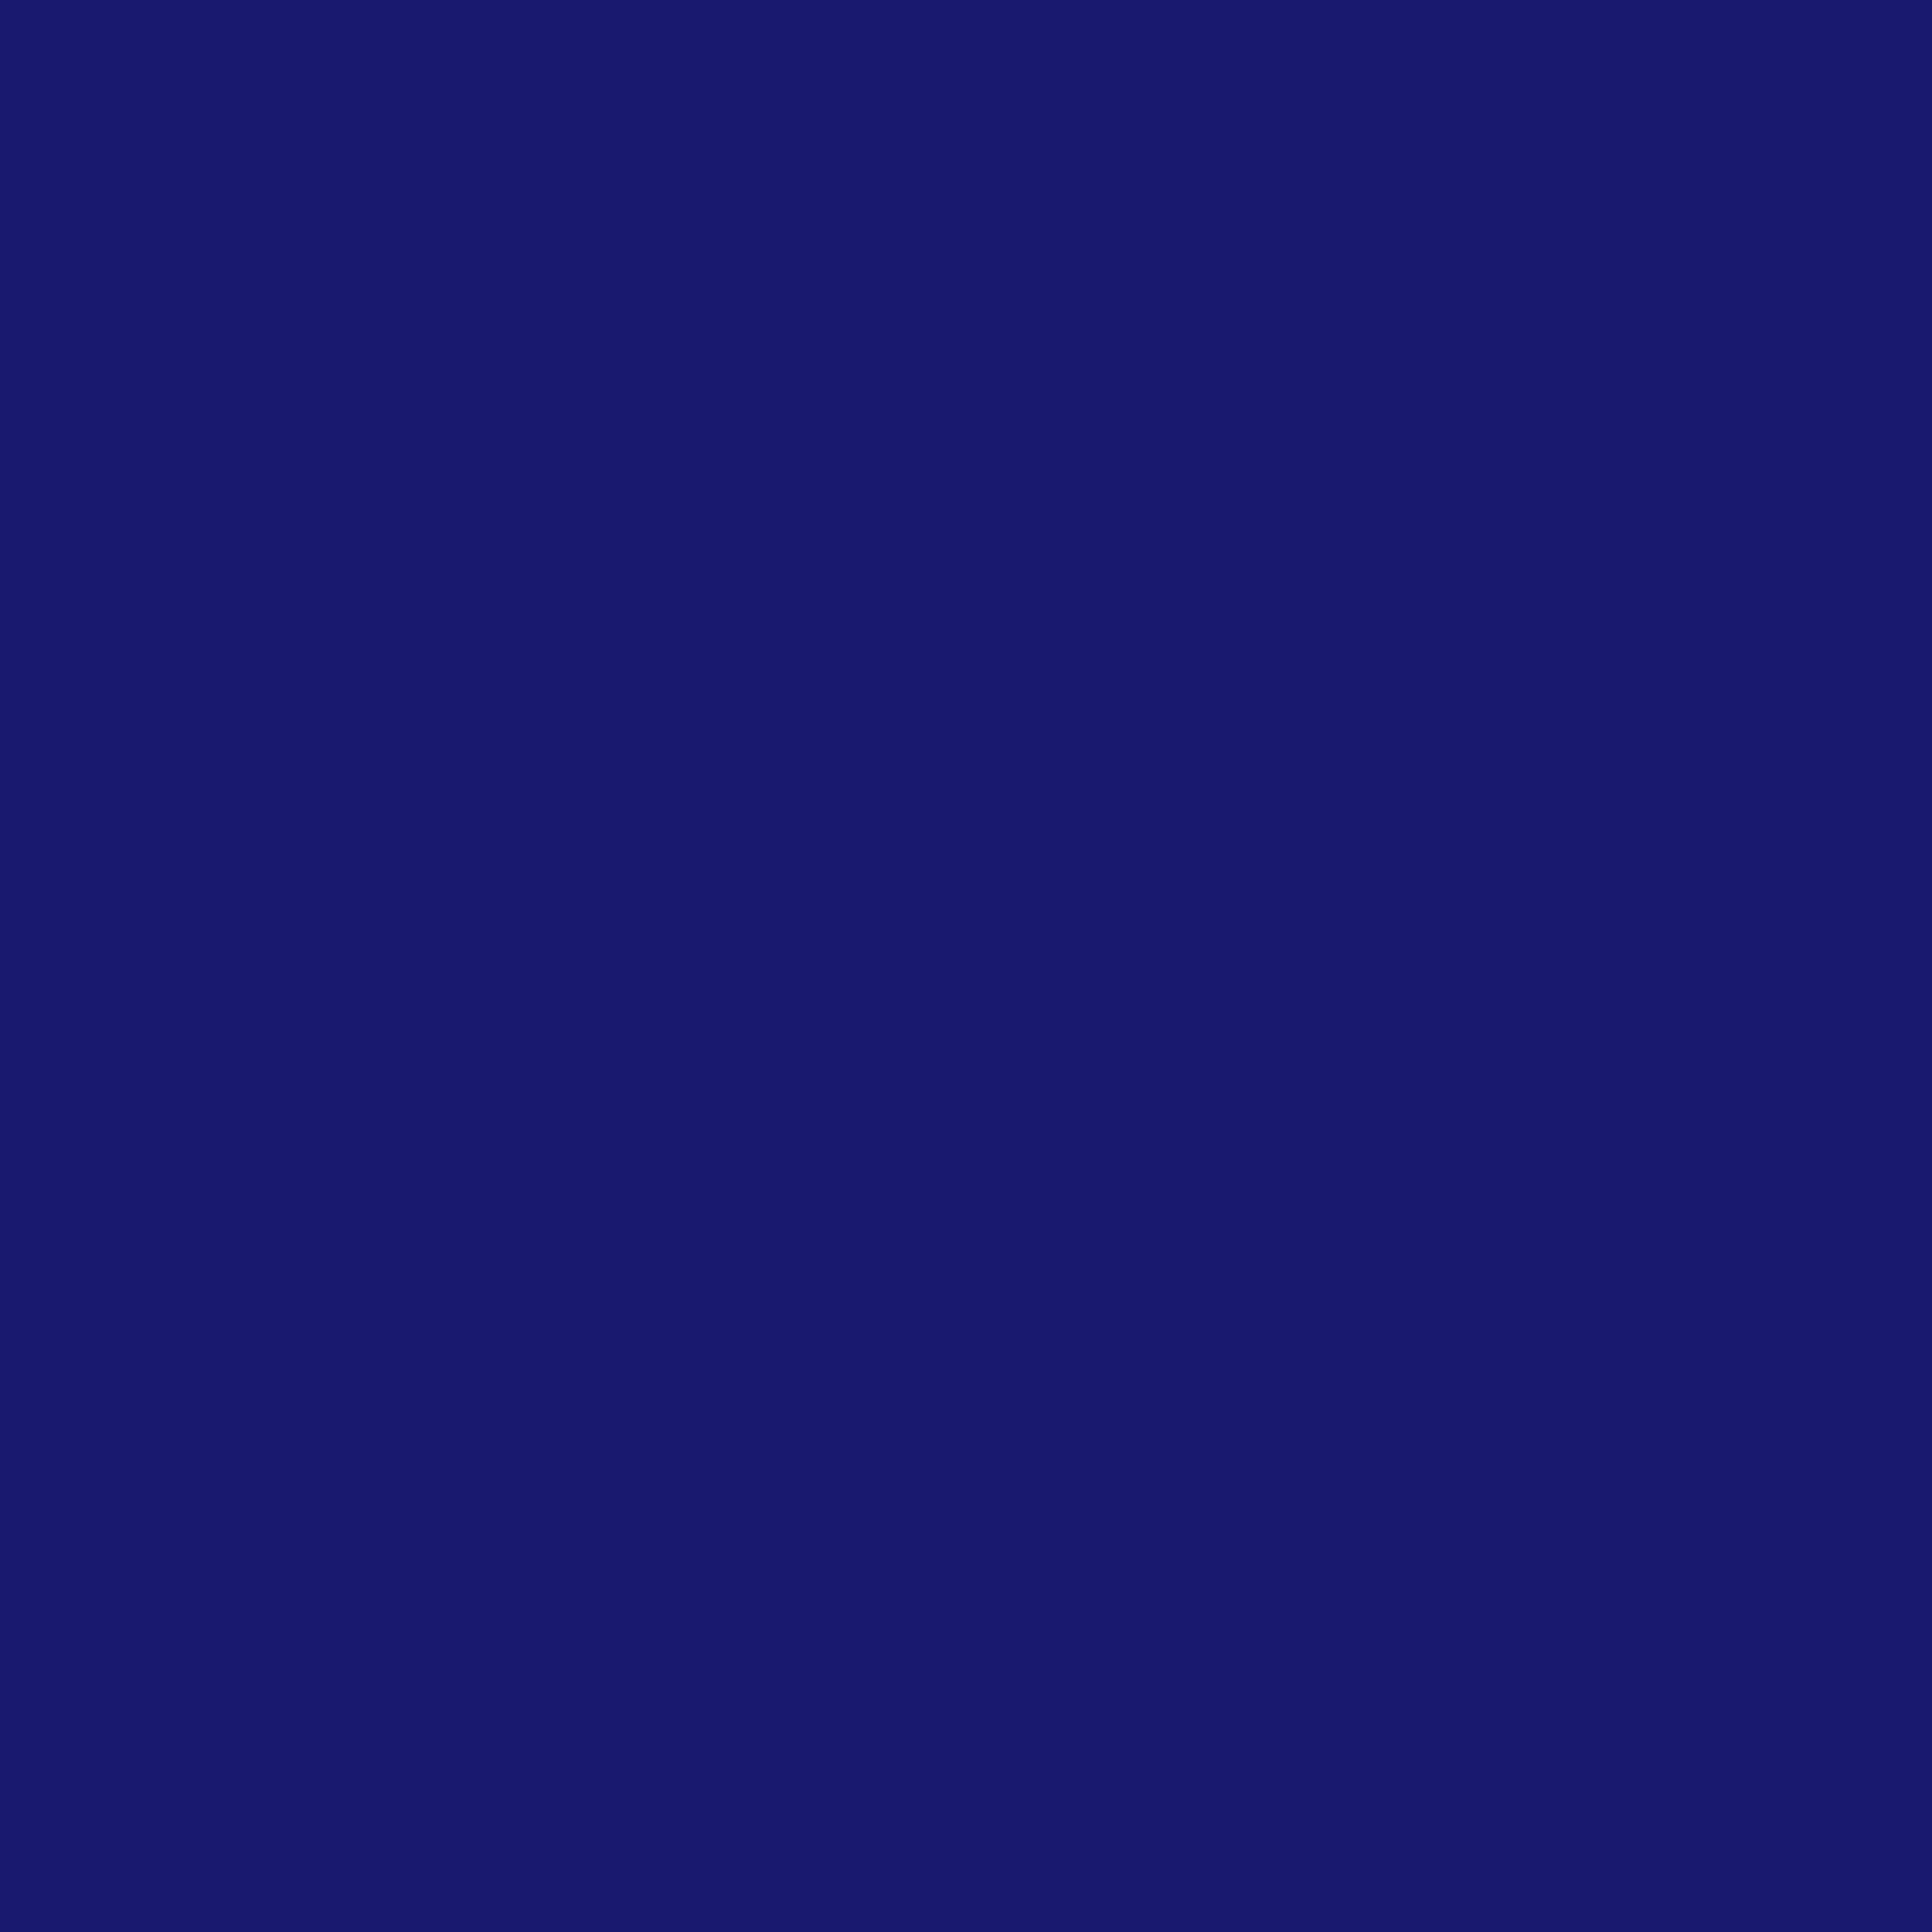 3600x3600 Midnight Blue Solid Color Background